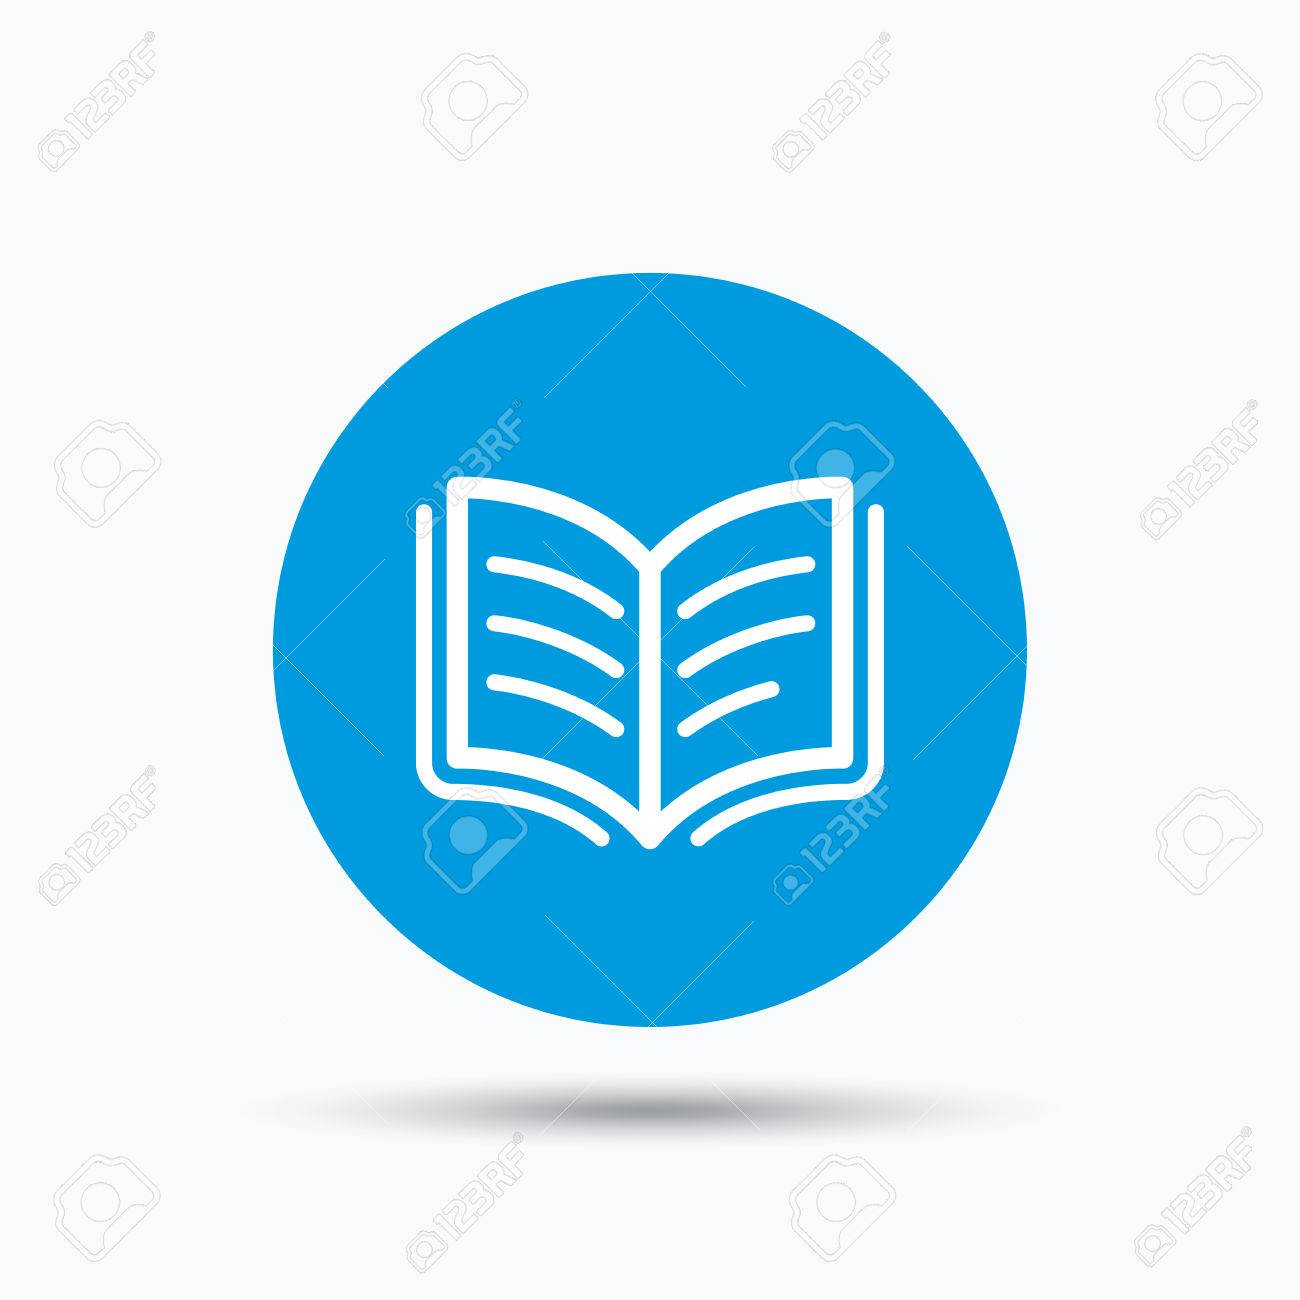 symbol for literature symbol of literature royalty stock images  book icon study literature sign education textbook symbol study literature sign education textbook symbol blue circle